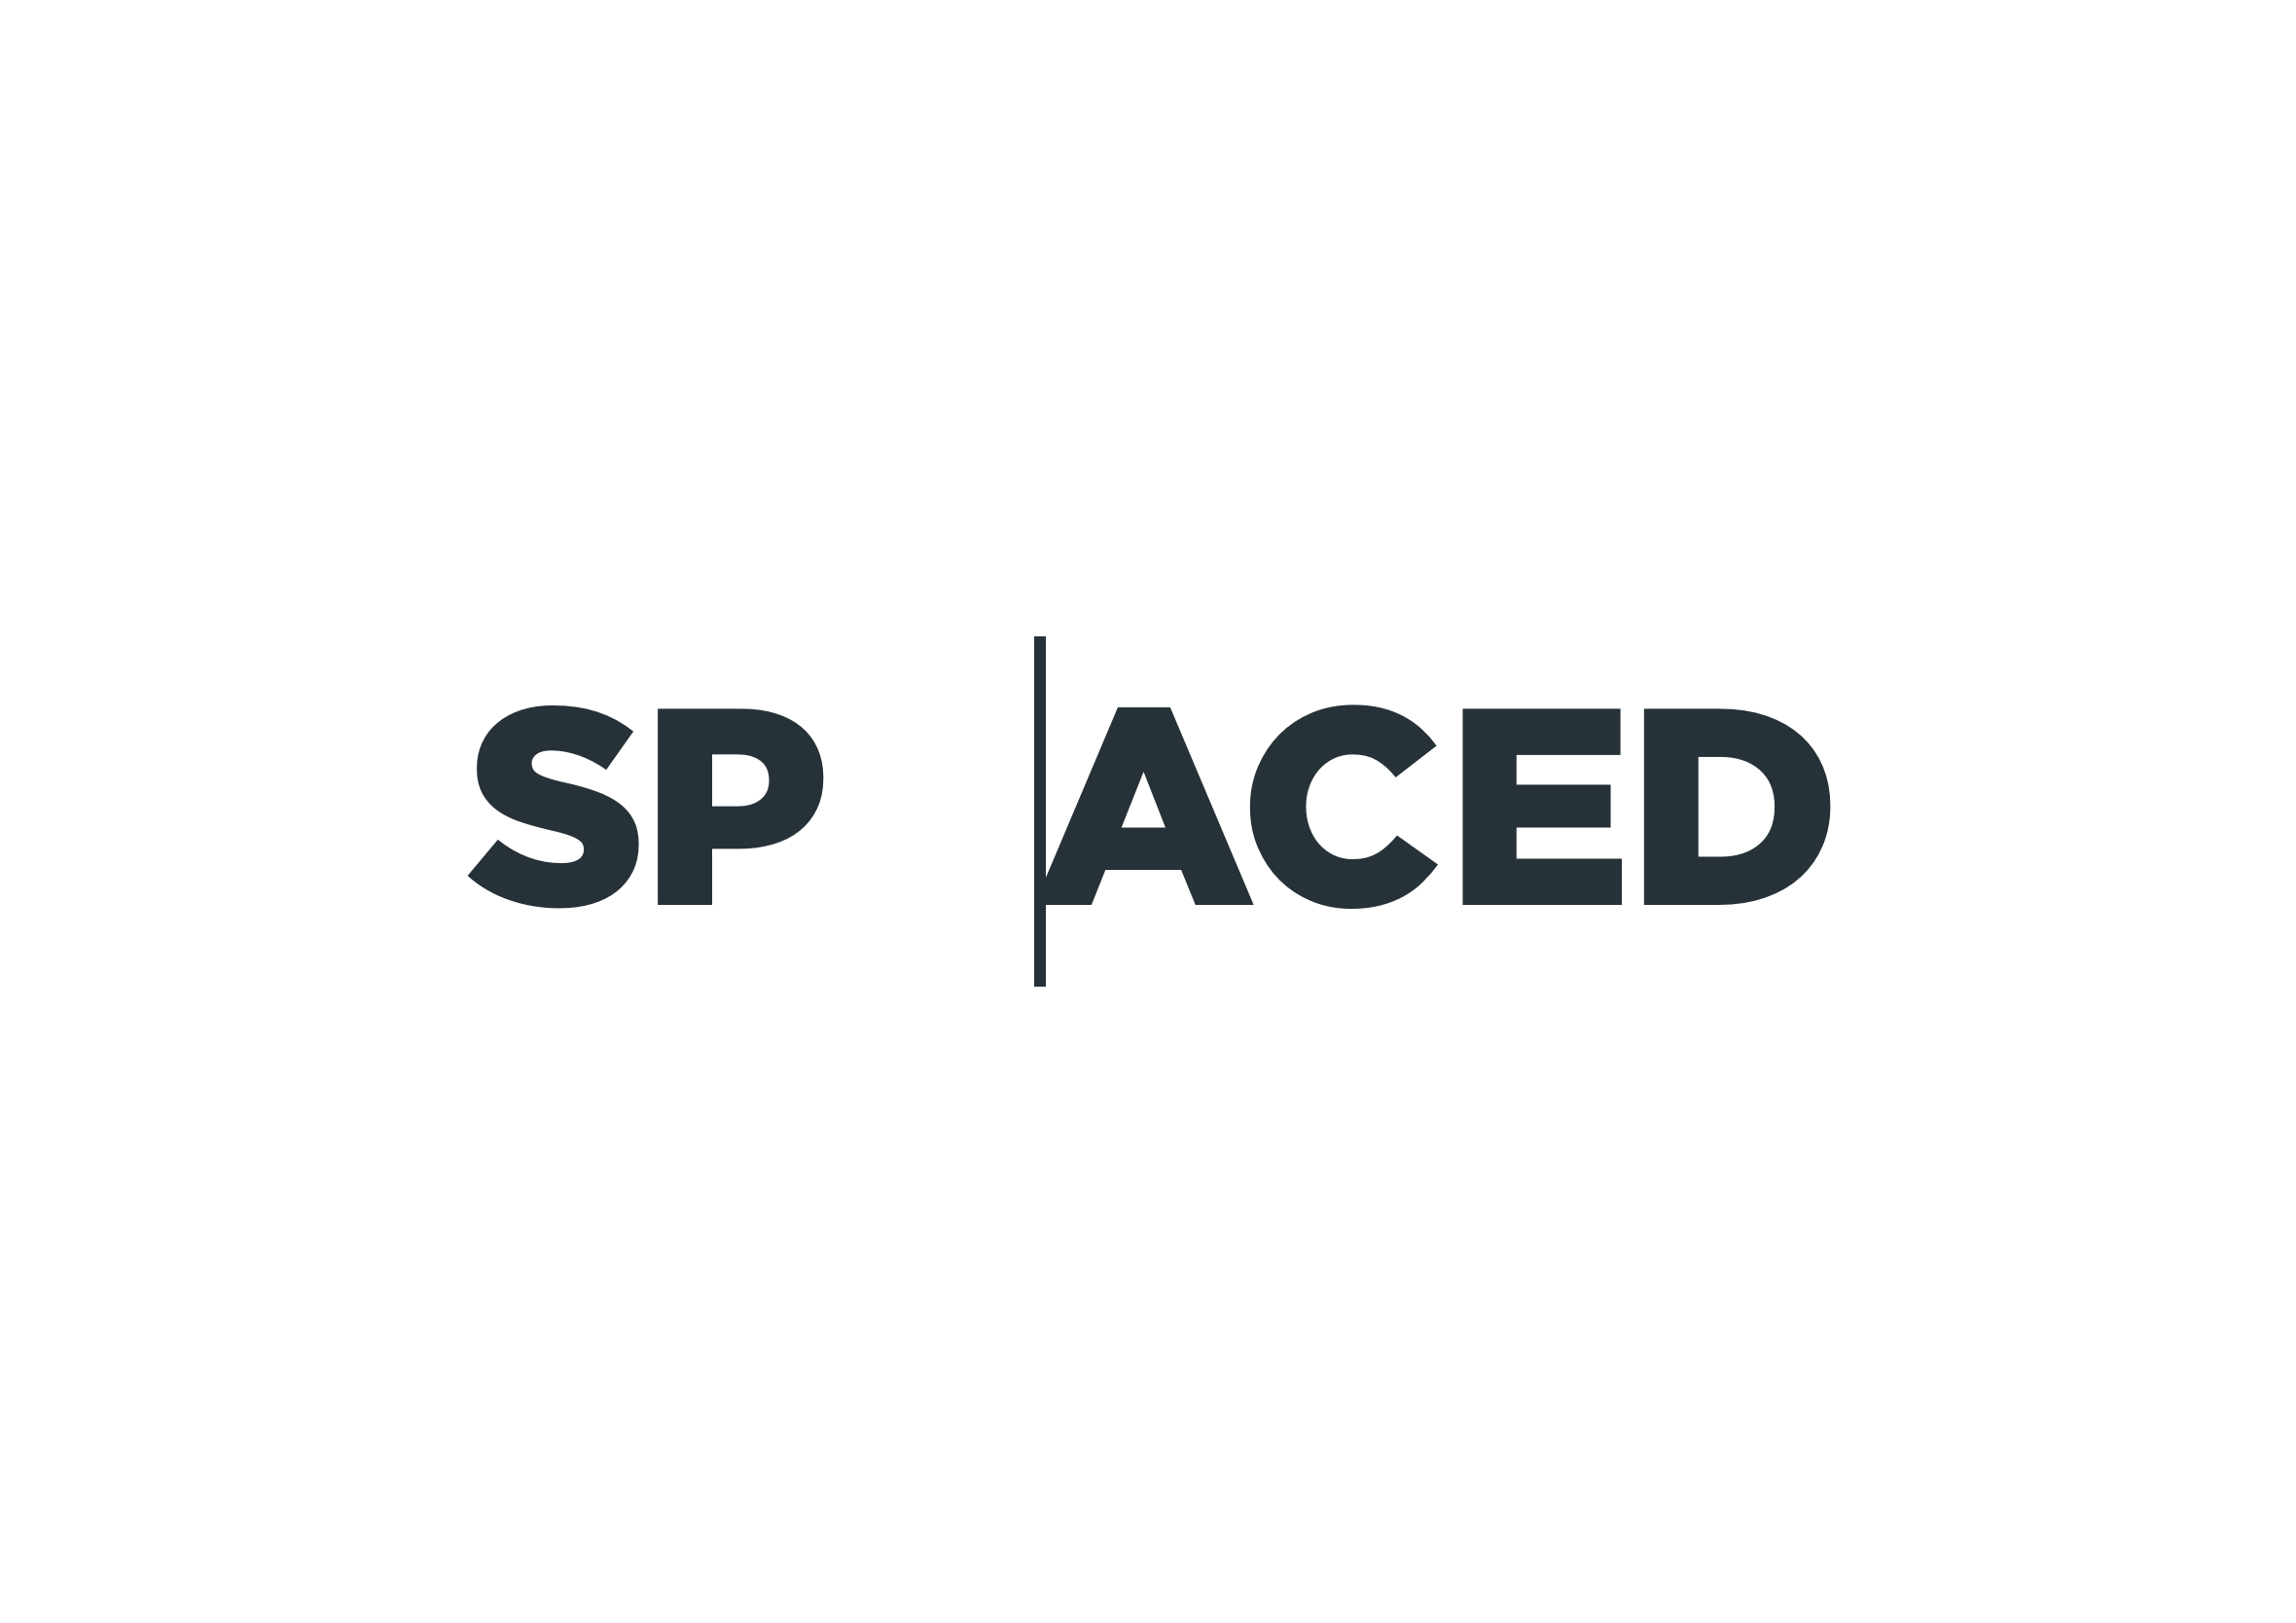 spaced-logo